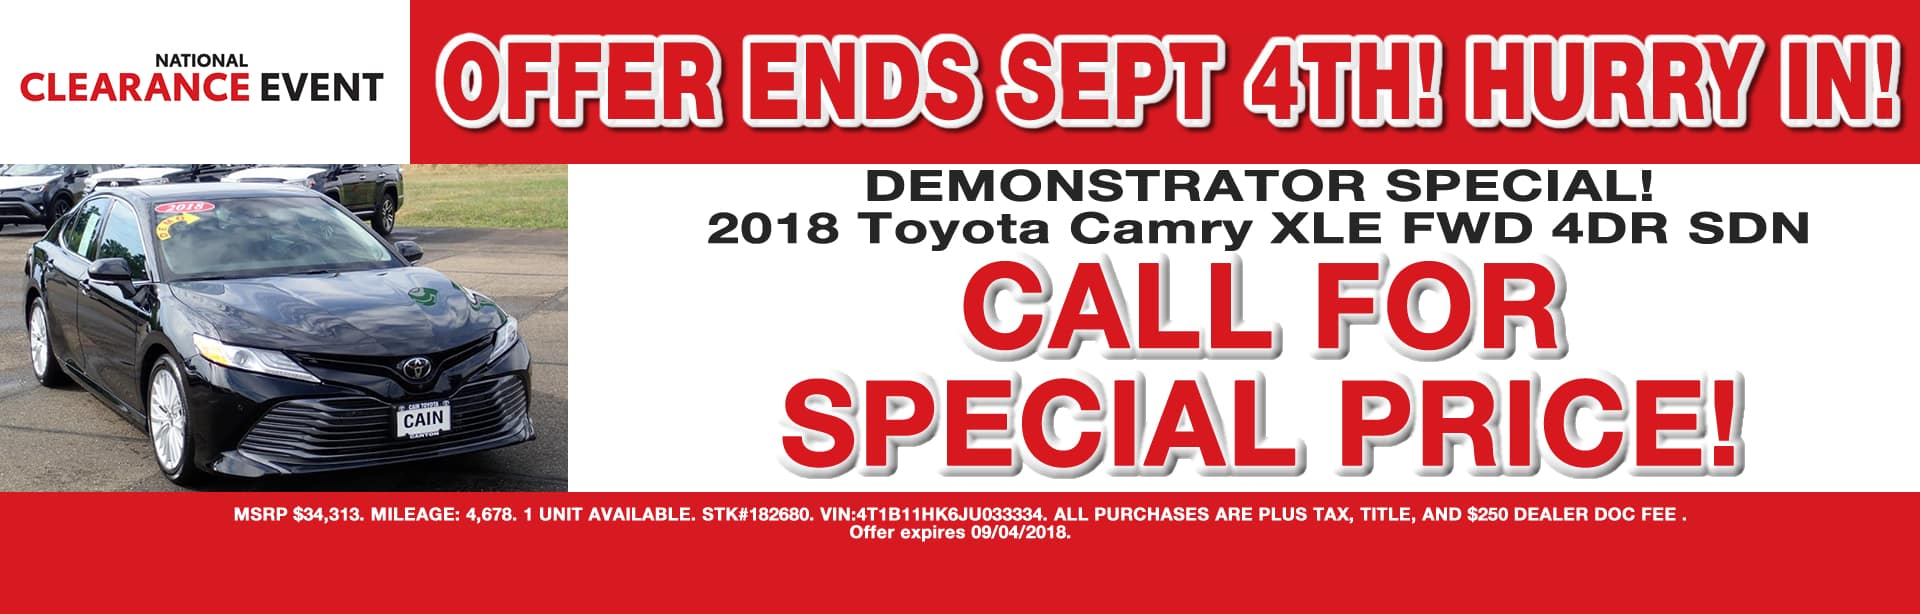 CAMRY DEMO SPECIAL PRICE OFFER CAIN TOYOTA NORTH CANTON OHIO